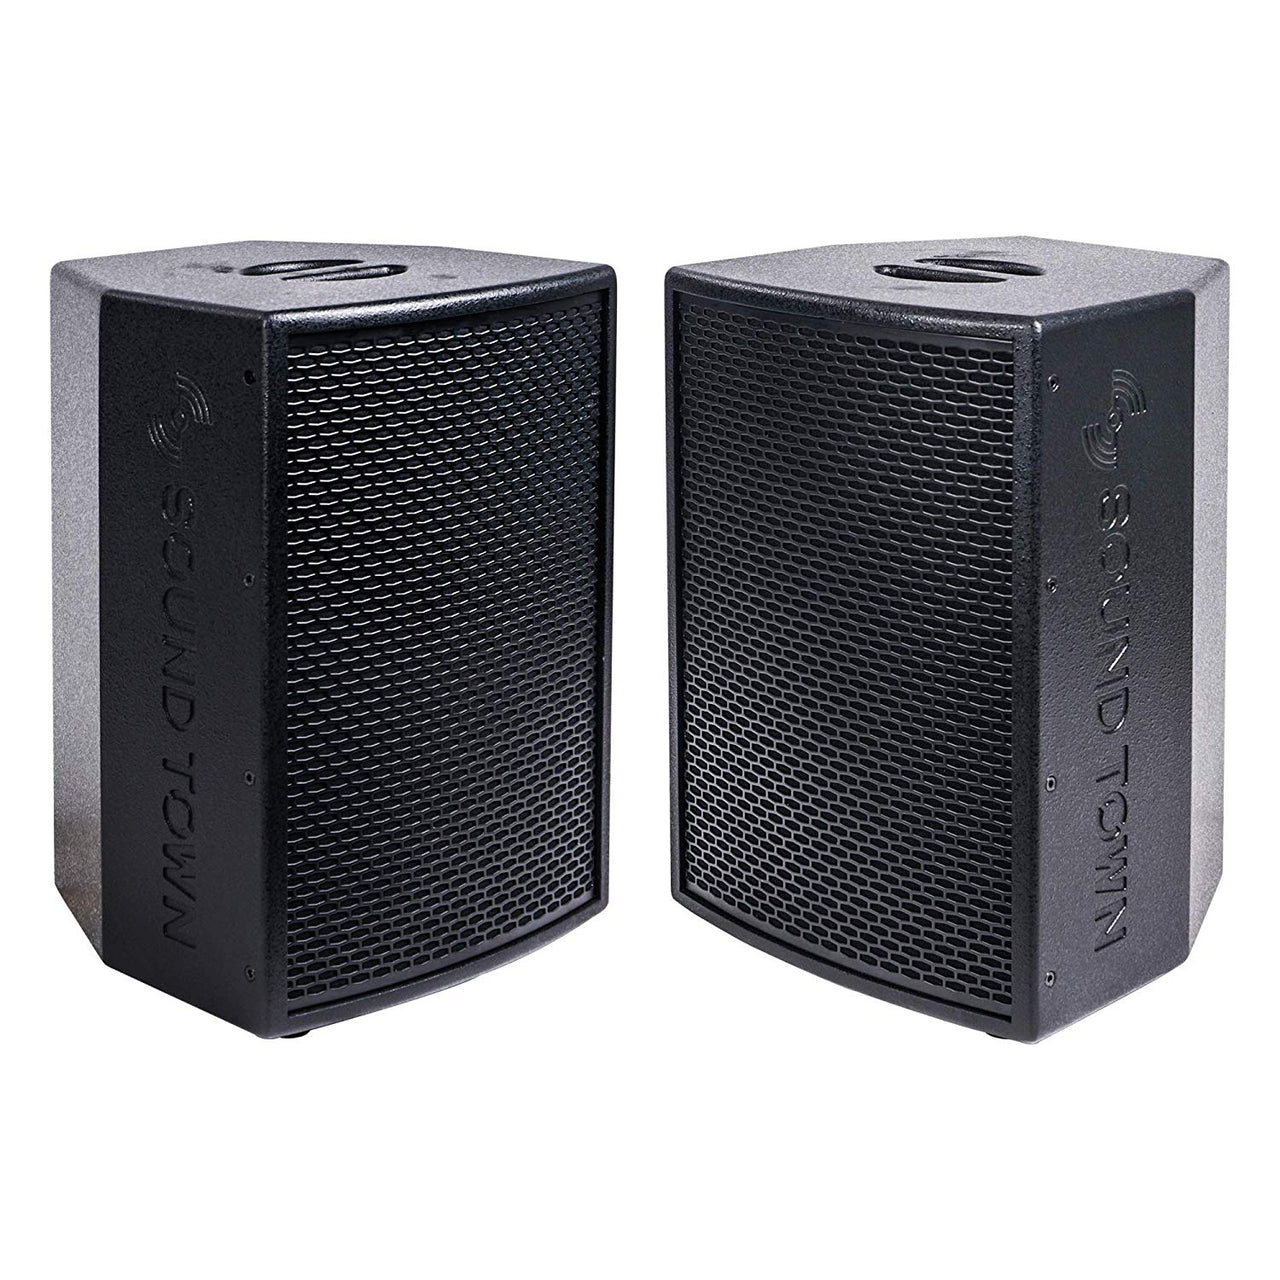 "KALE-110BPW-PAIR <br/>KALE Series 2-Pack 10"" 500W Powered DJ PA Speaker Set with Bluetooth, Titanium Compression Driver and 3-Channel Mixer for Mobile DJ, Live Sound, Karaoke, Bar, Church, Black"